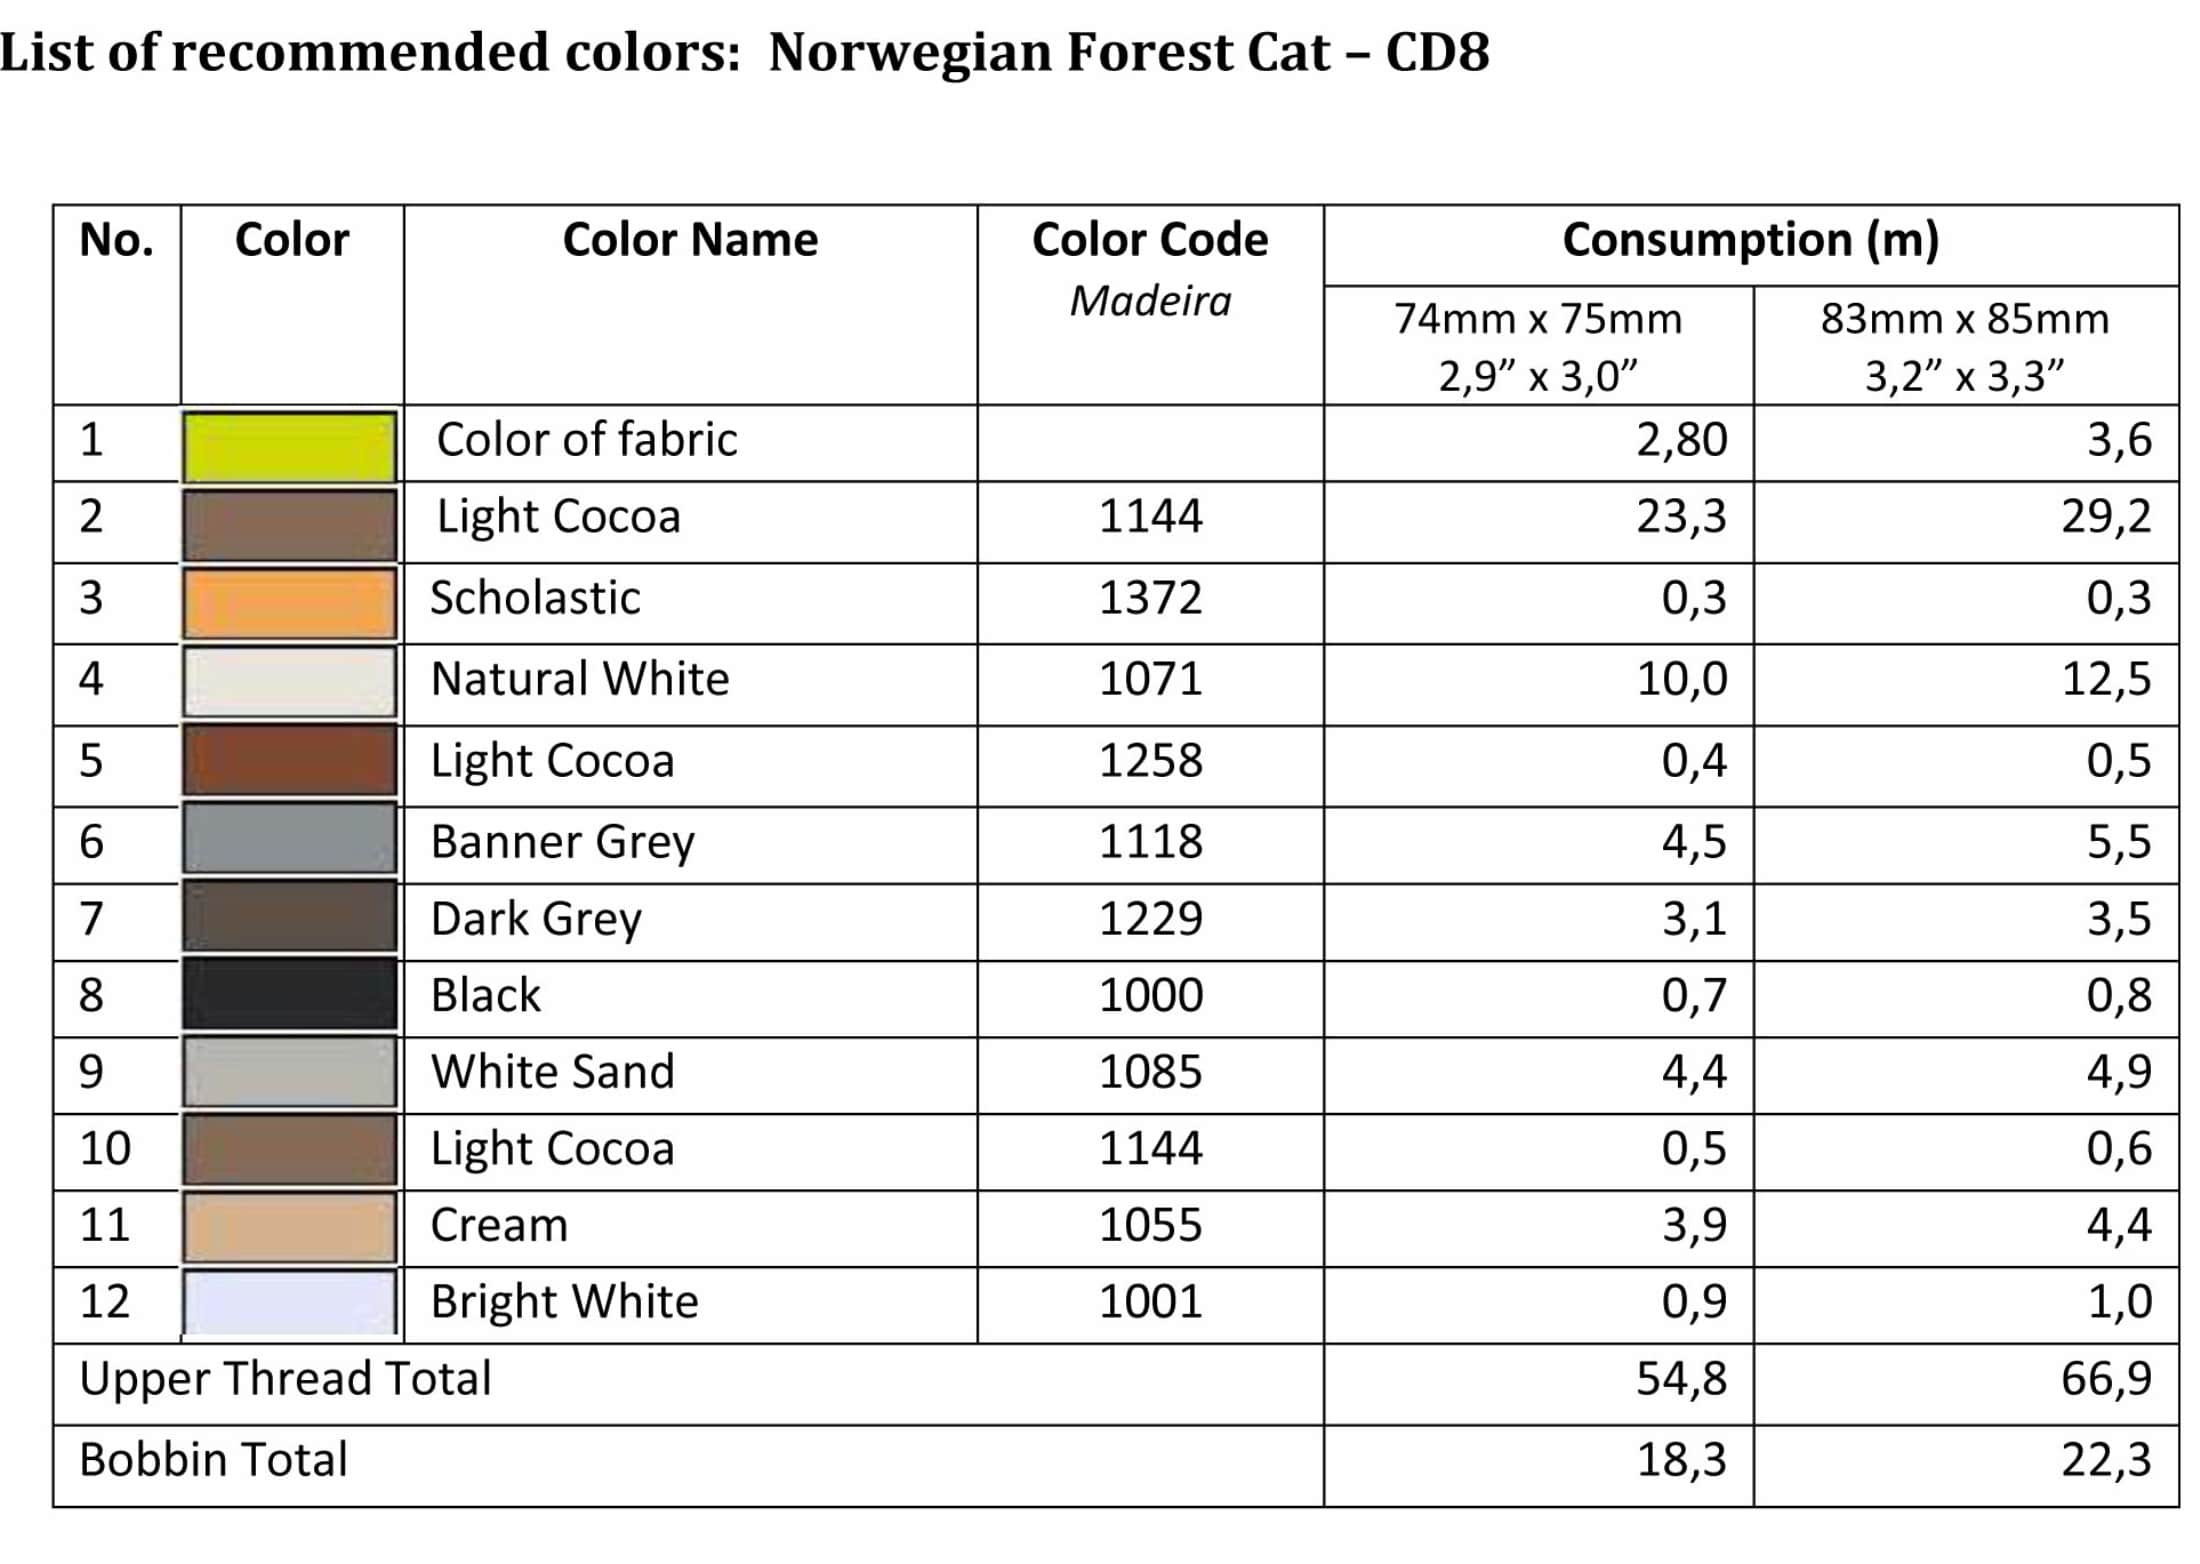 List of recommended colors - CD8